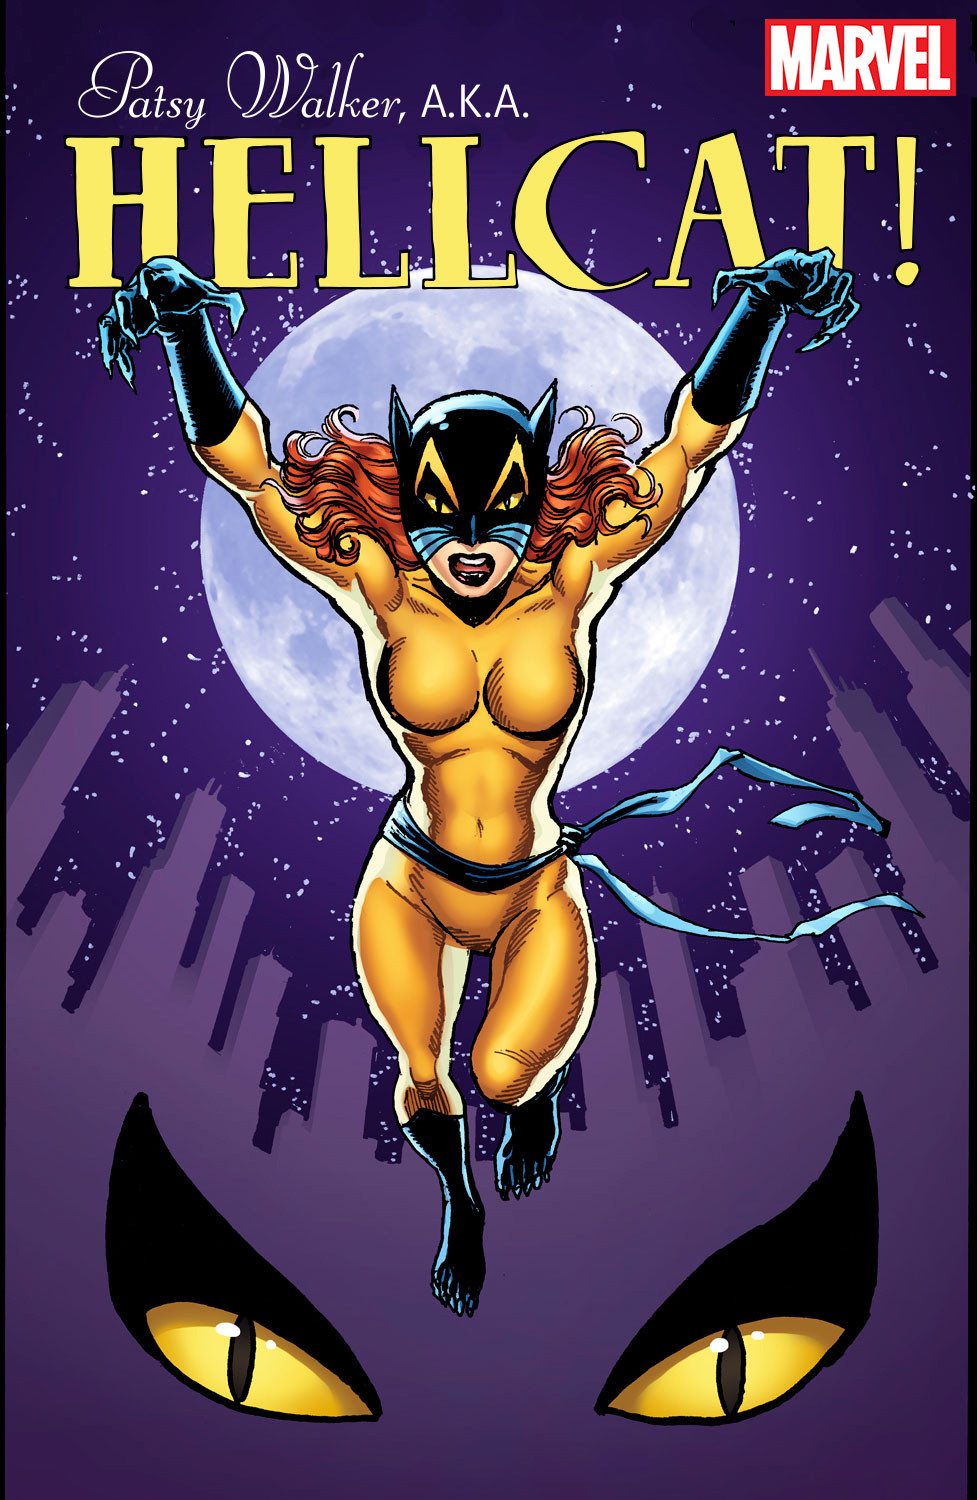 Patsy walker as Hellcat